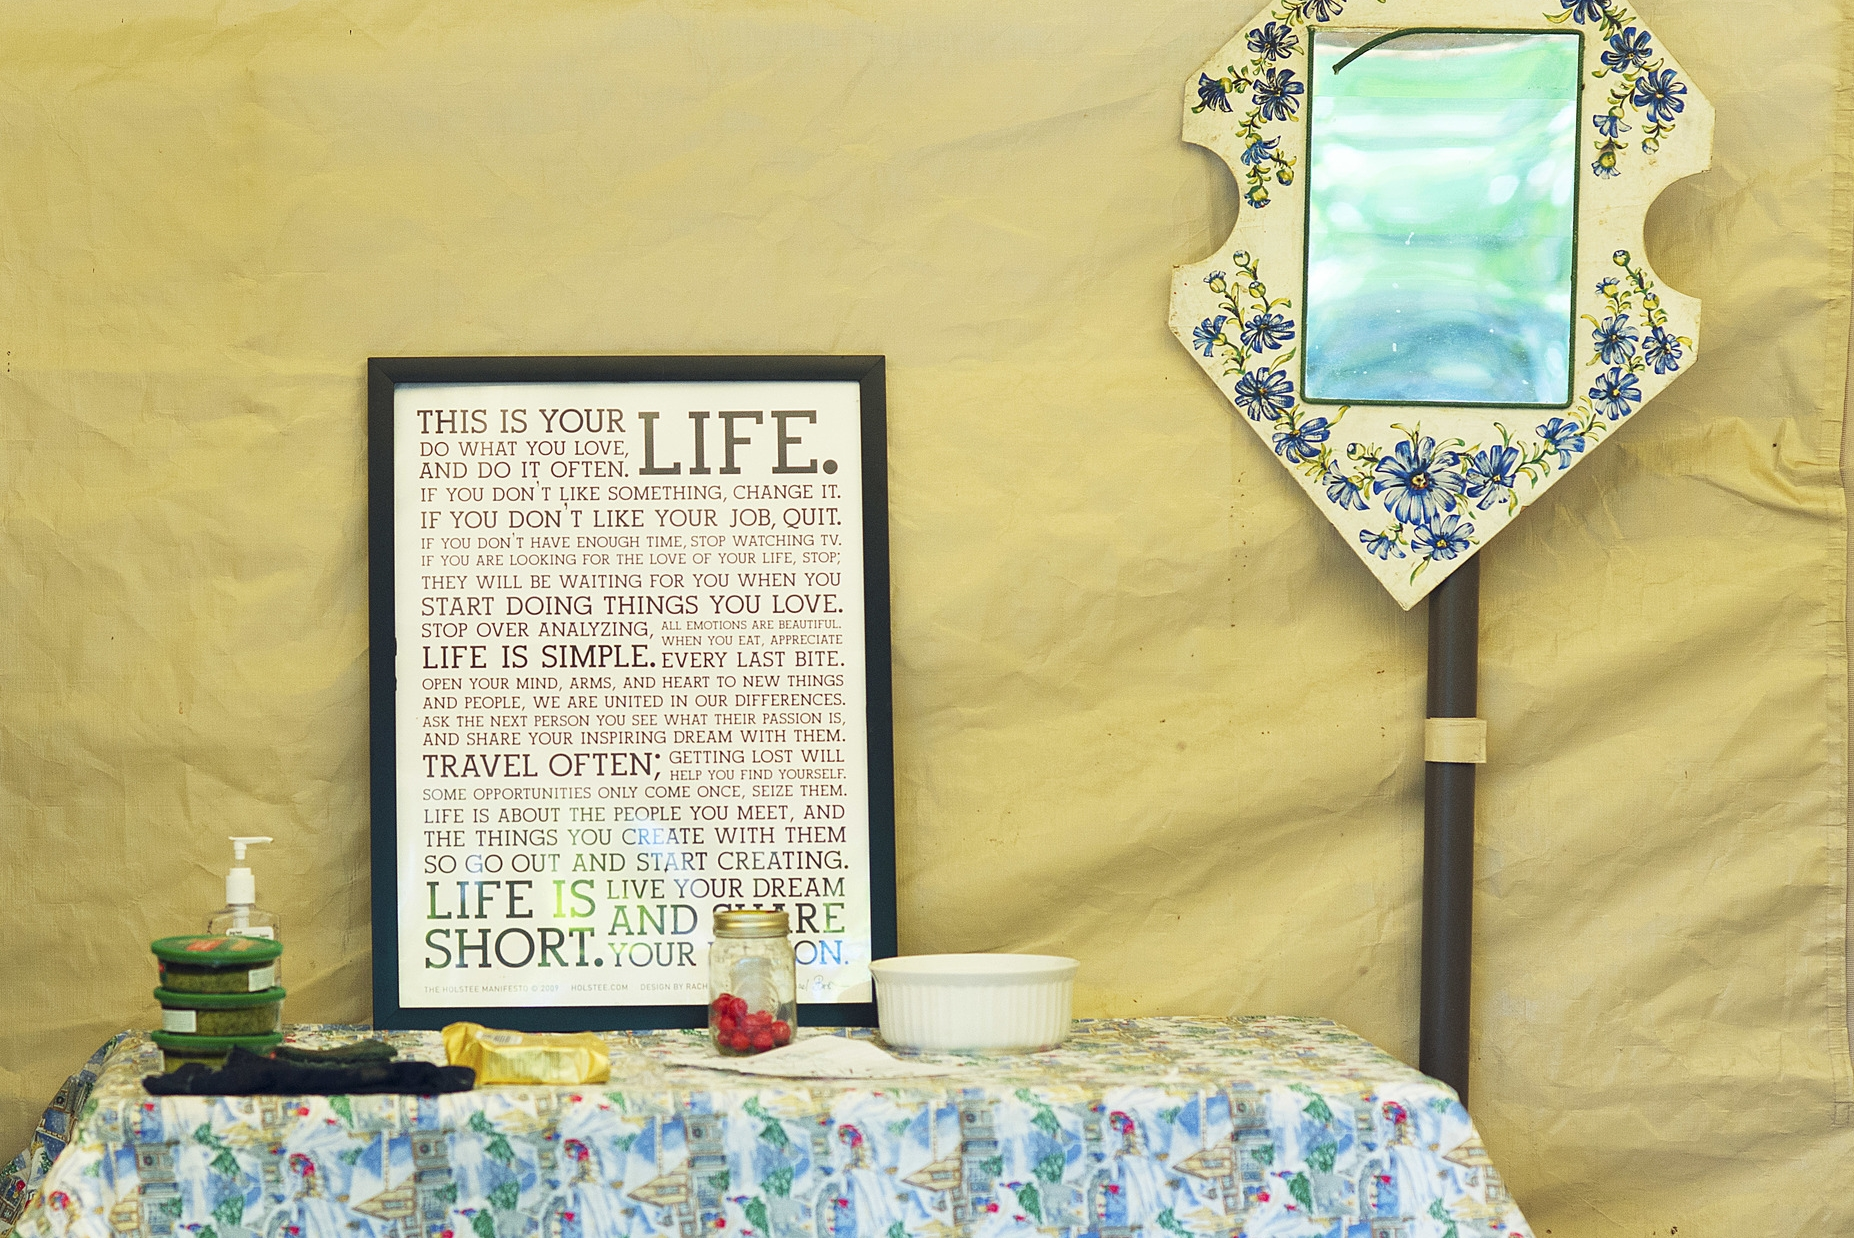 Eugene, ORE. - Home decorations in the kitchen tent at the Nightingale Health Sanctuary. Photo by: Debra Josephson